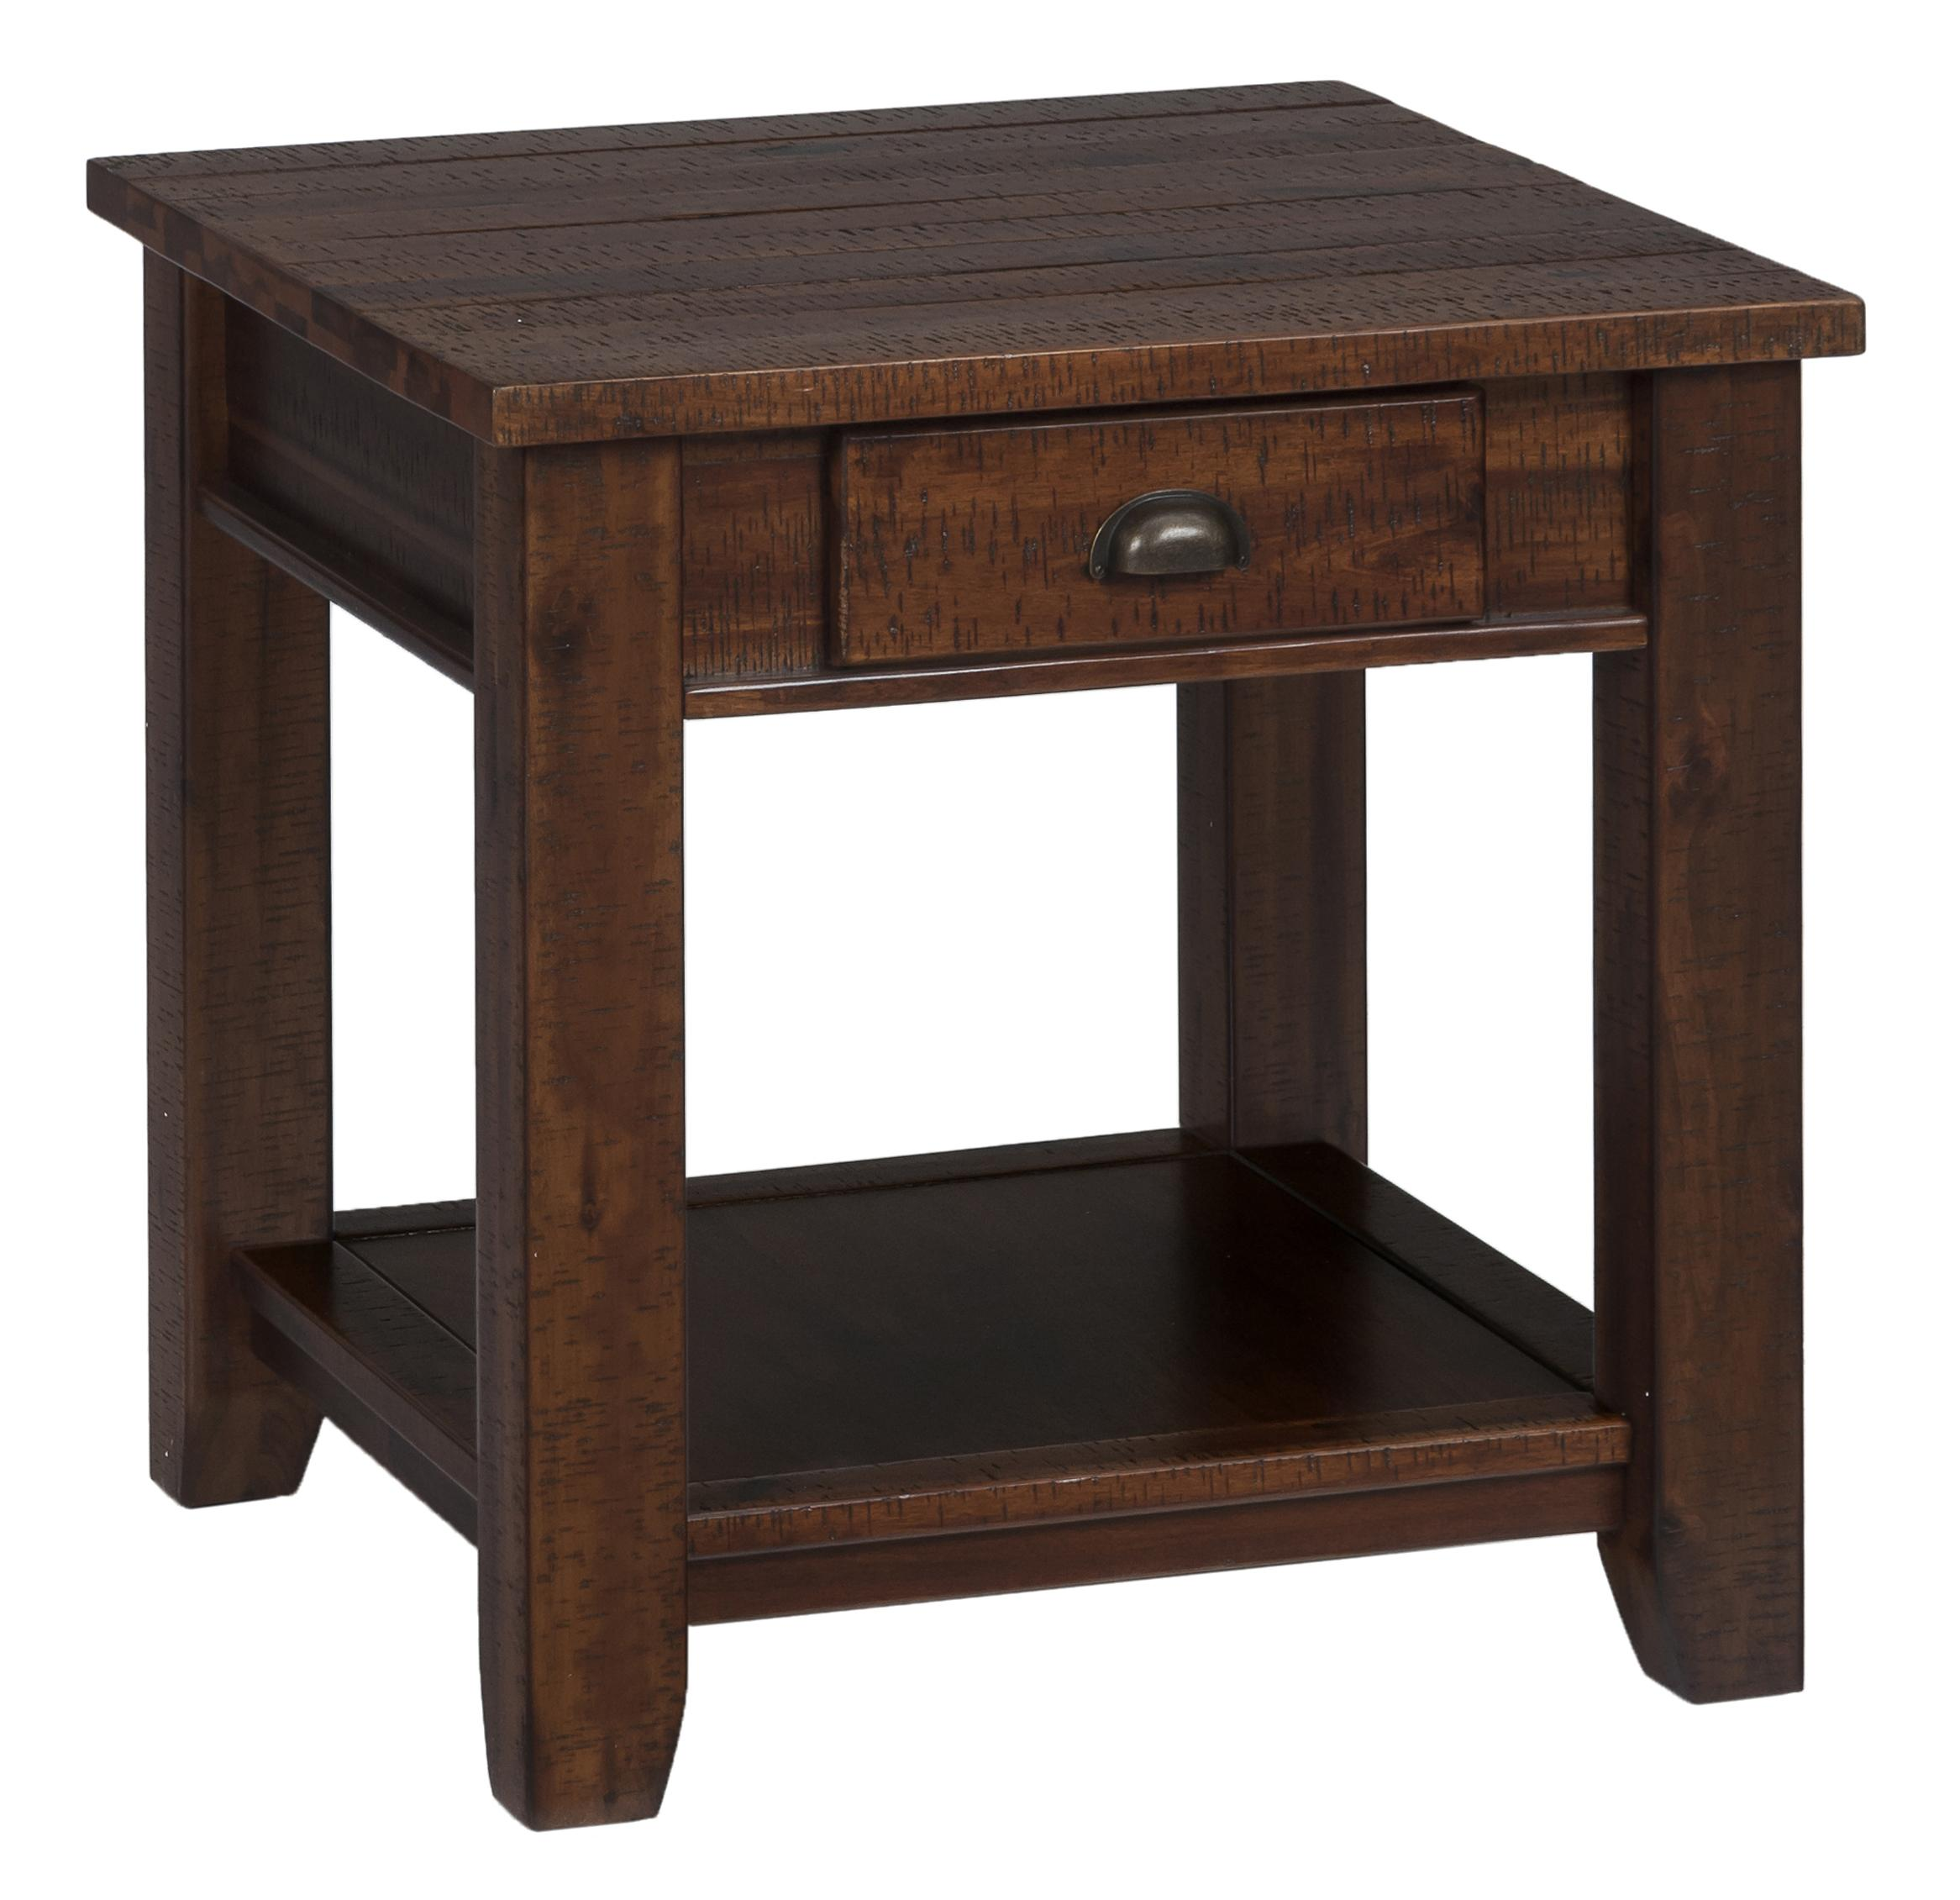 Jofran Urban Lodge Brown 731 3 Casual End Table With One